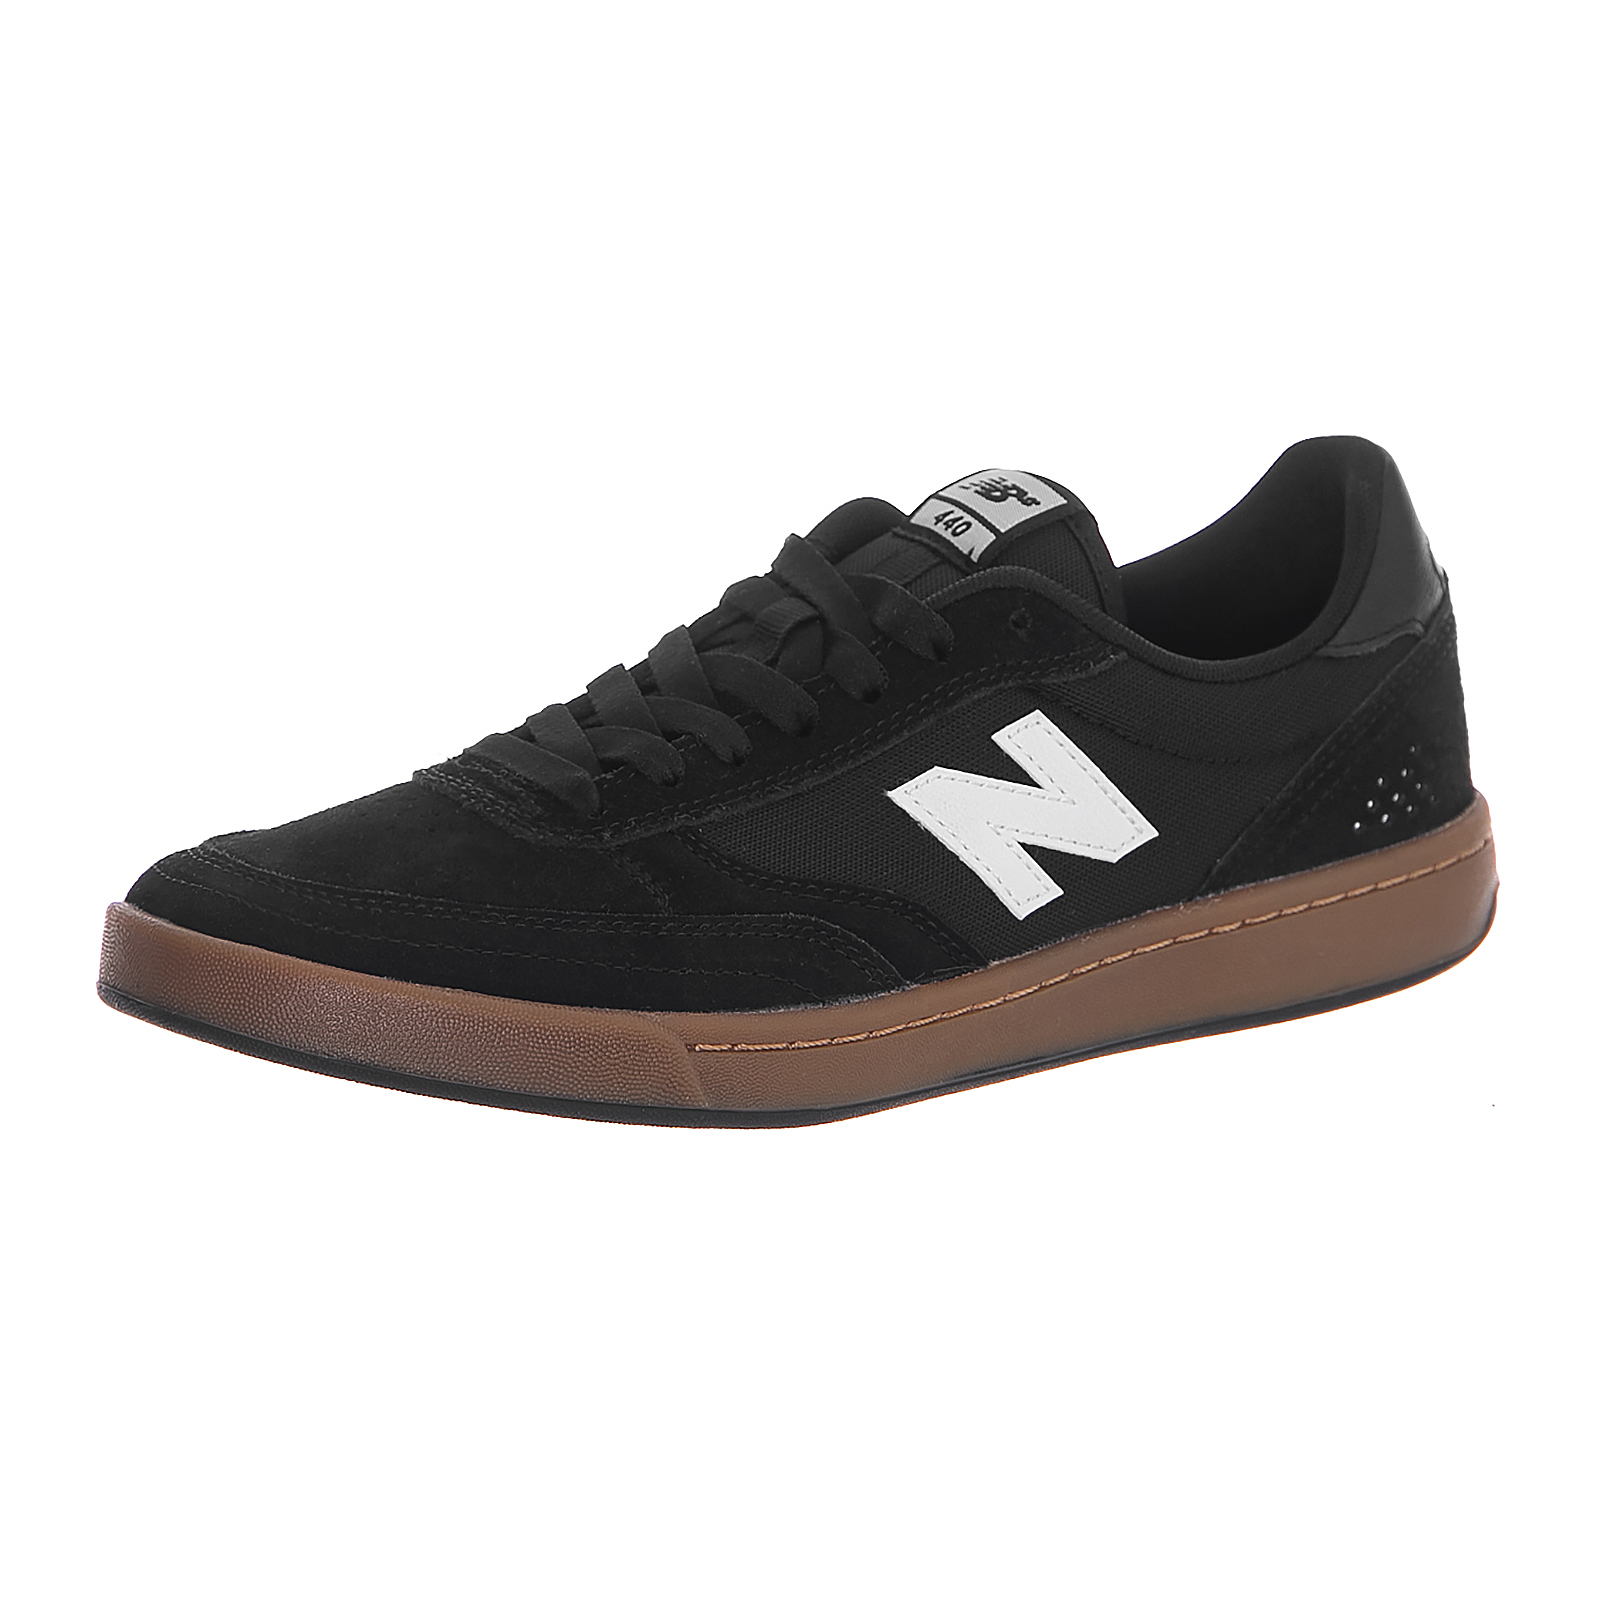 New Balance Sneakers Numeric Skateboarding Noir/ Gris  Textile/Synthetic D  Nero